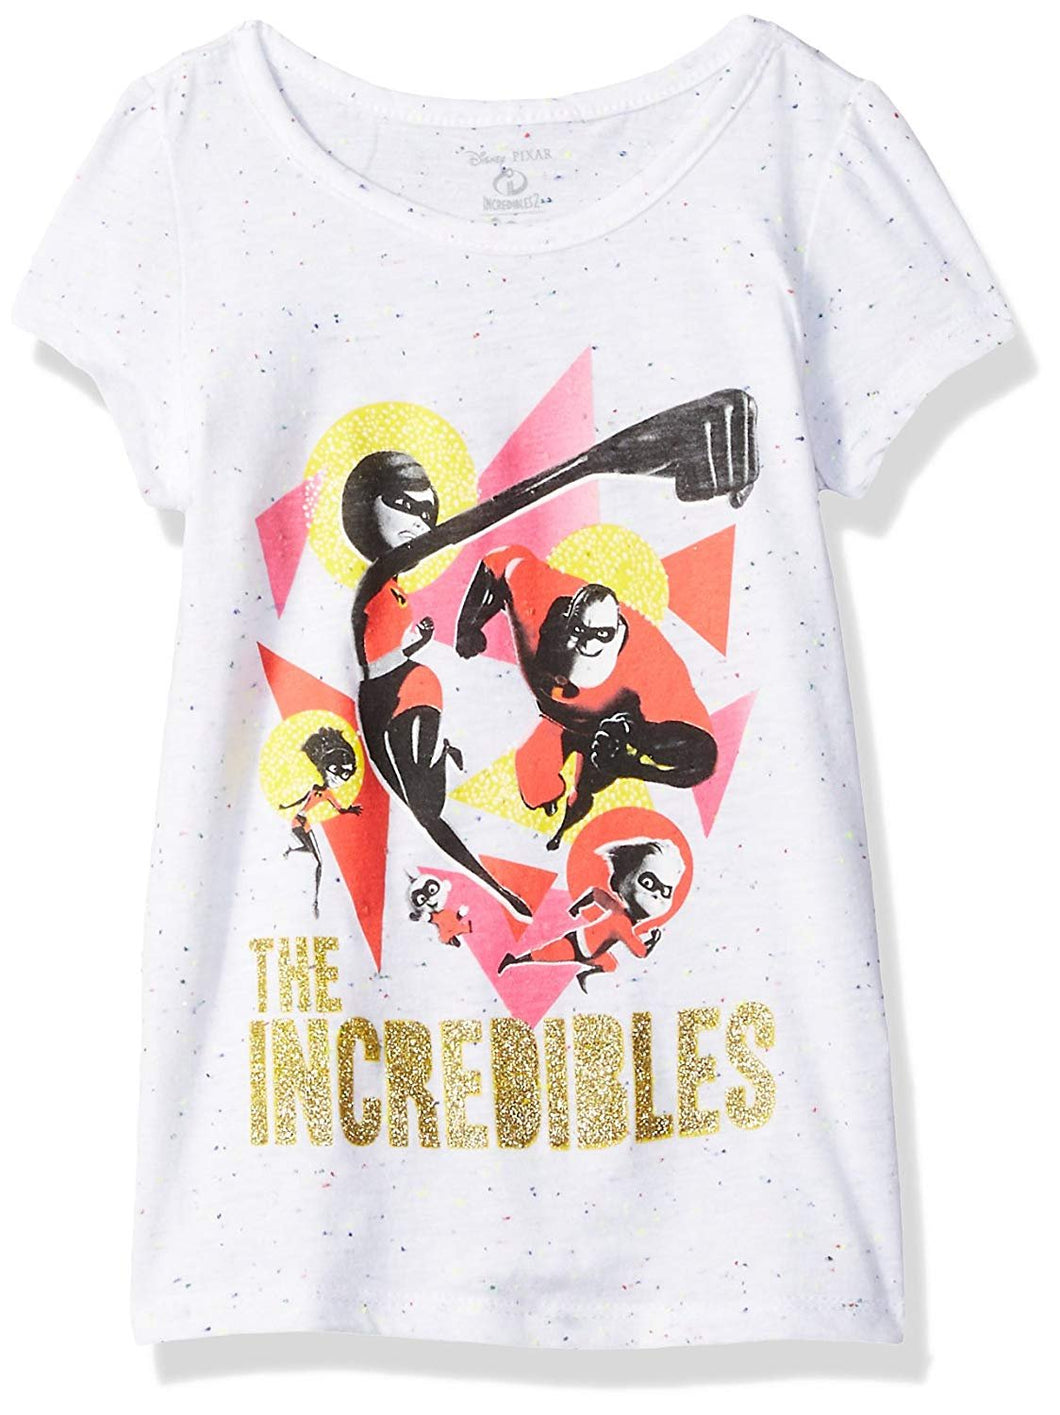 Disney-Pixar Incredibles 2 Family Group Toddler Girls' Short Sleeve T-Shirt, White